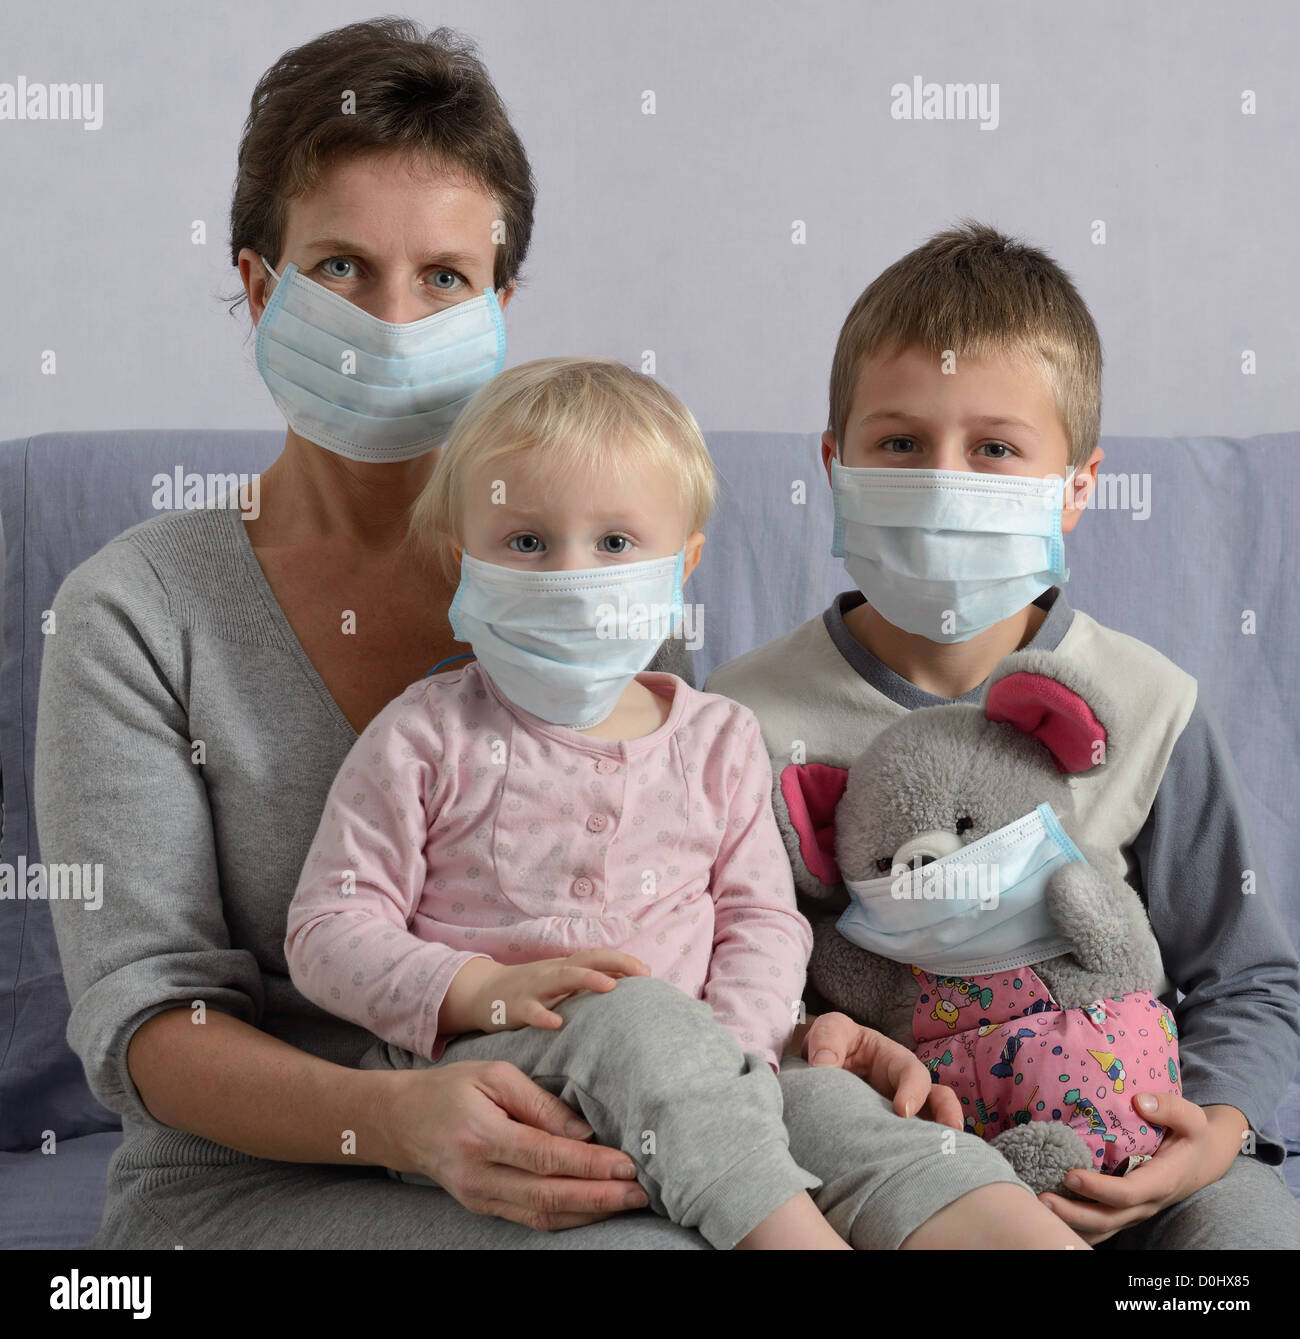 Family in protective masks - Stock Image